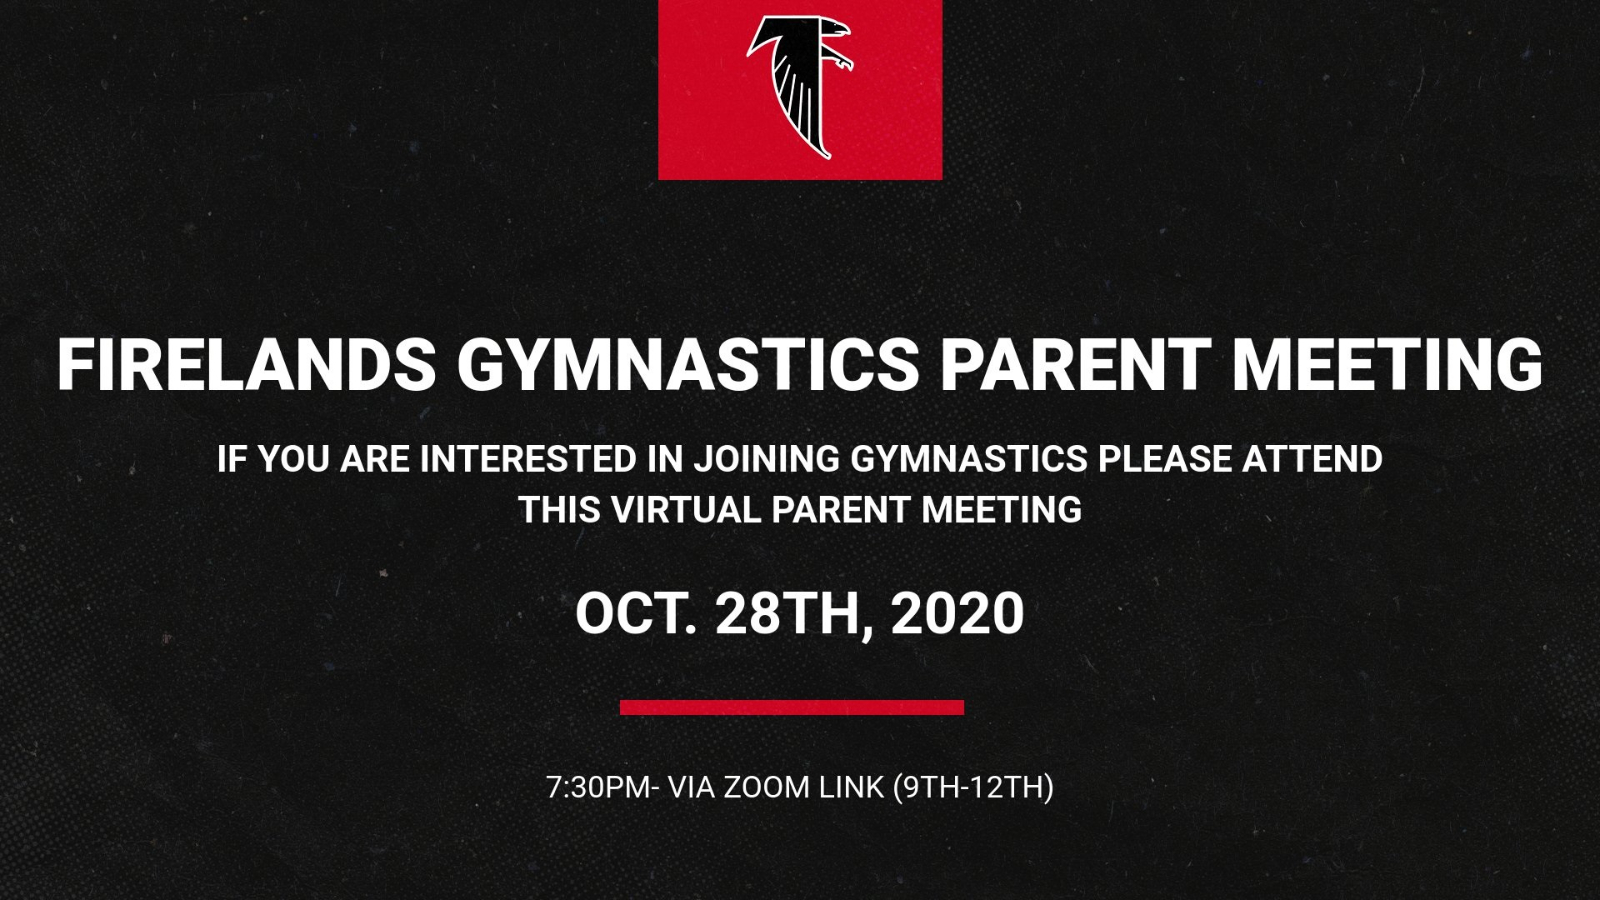 Interested in competing in Gymnastics?